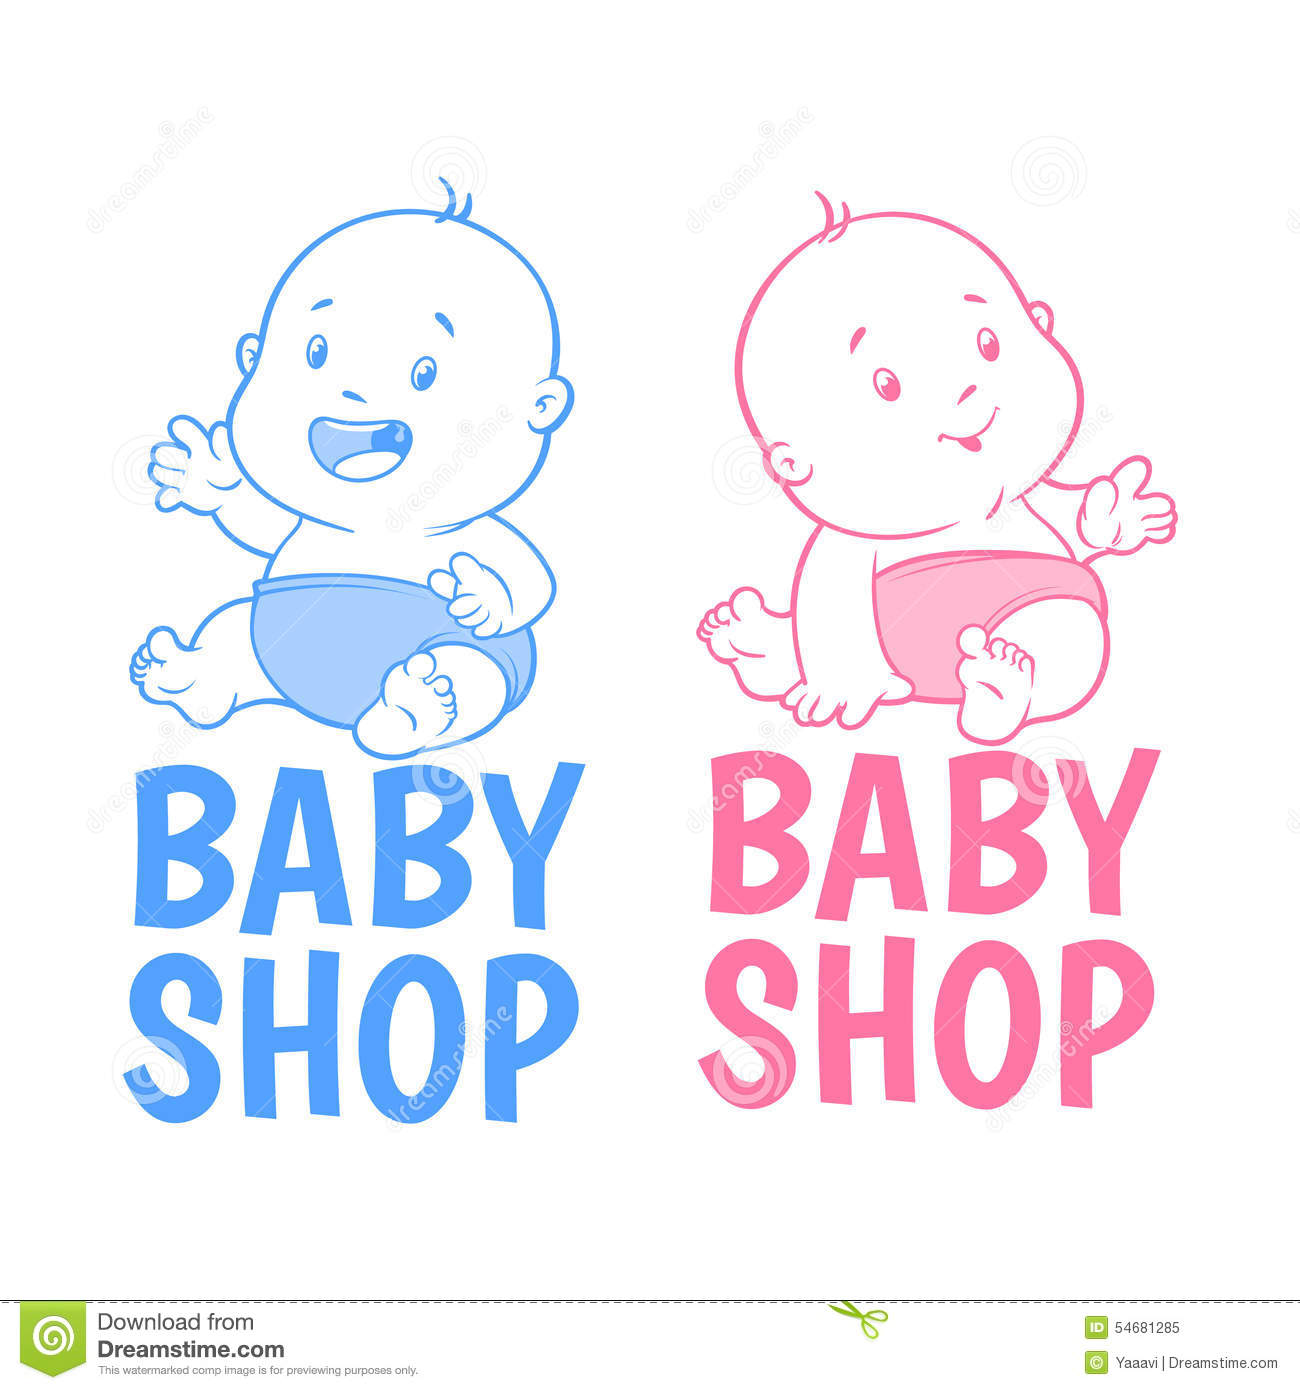 Two baby shop logo stock vector illustration of childhood for Beb logo